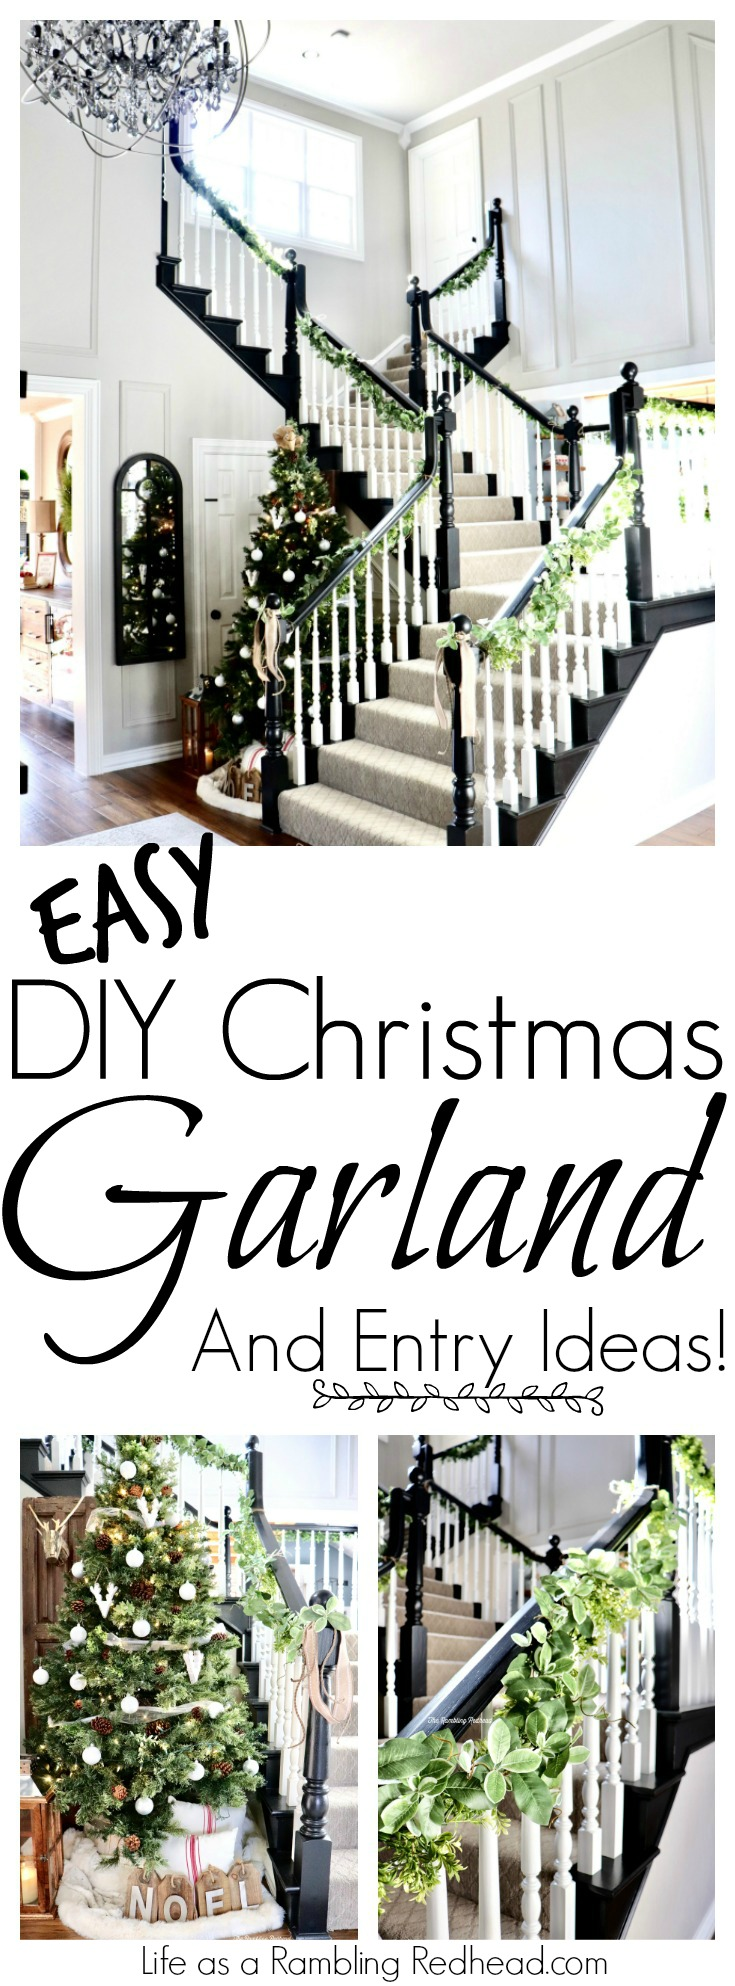 GORGEOUS DIY Christmas Garland and Entry decorating Ideas! So many Pictures! (Life as a Rambling Redhead)